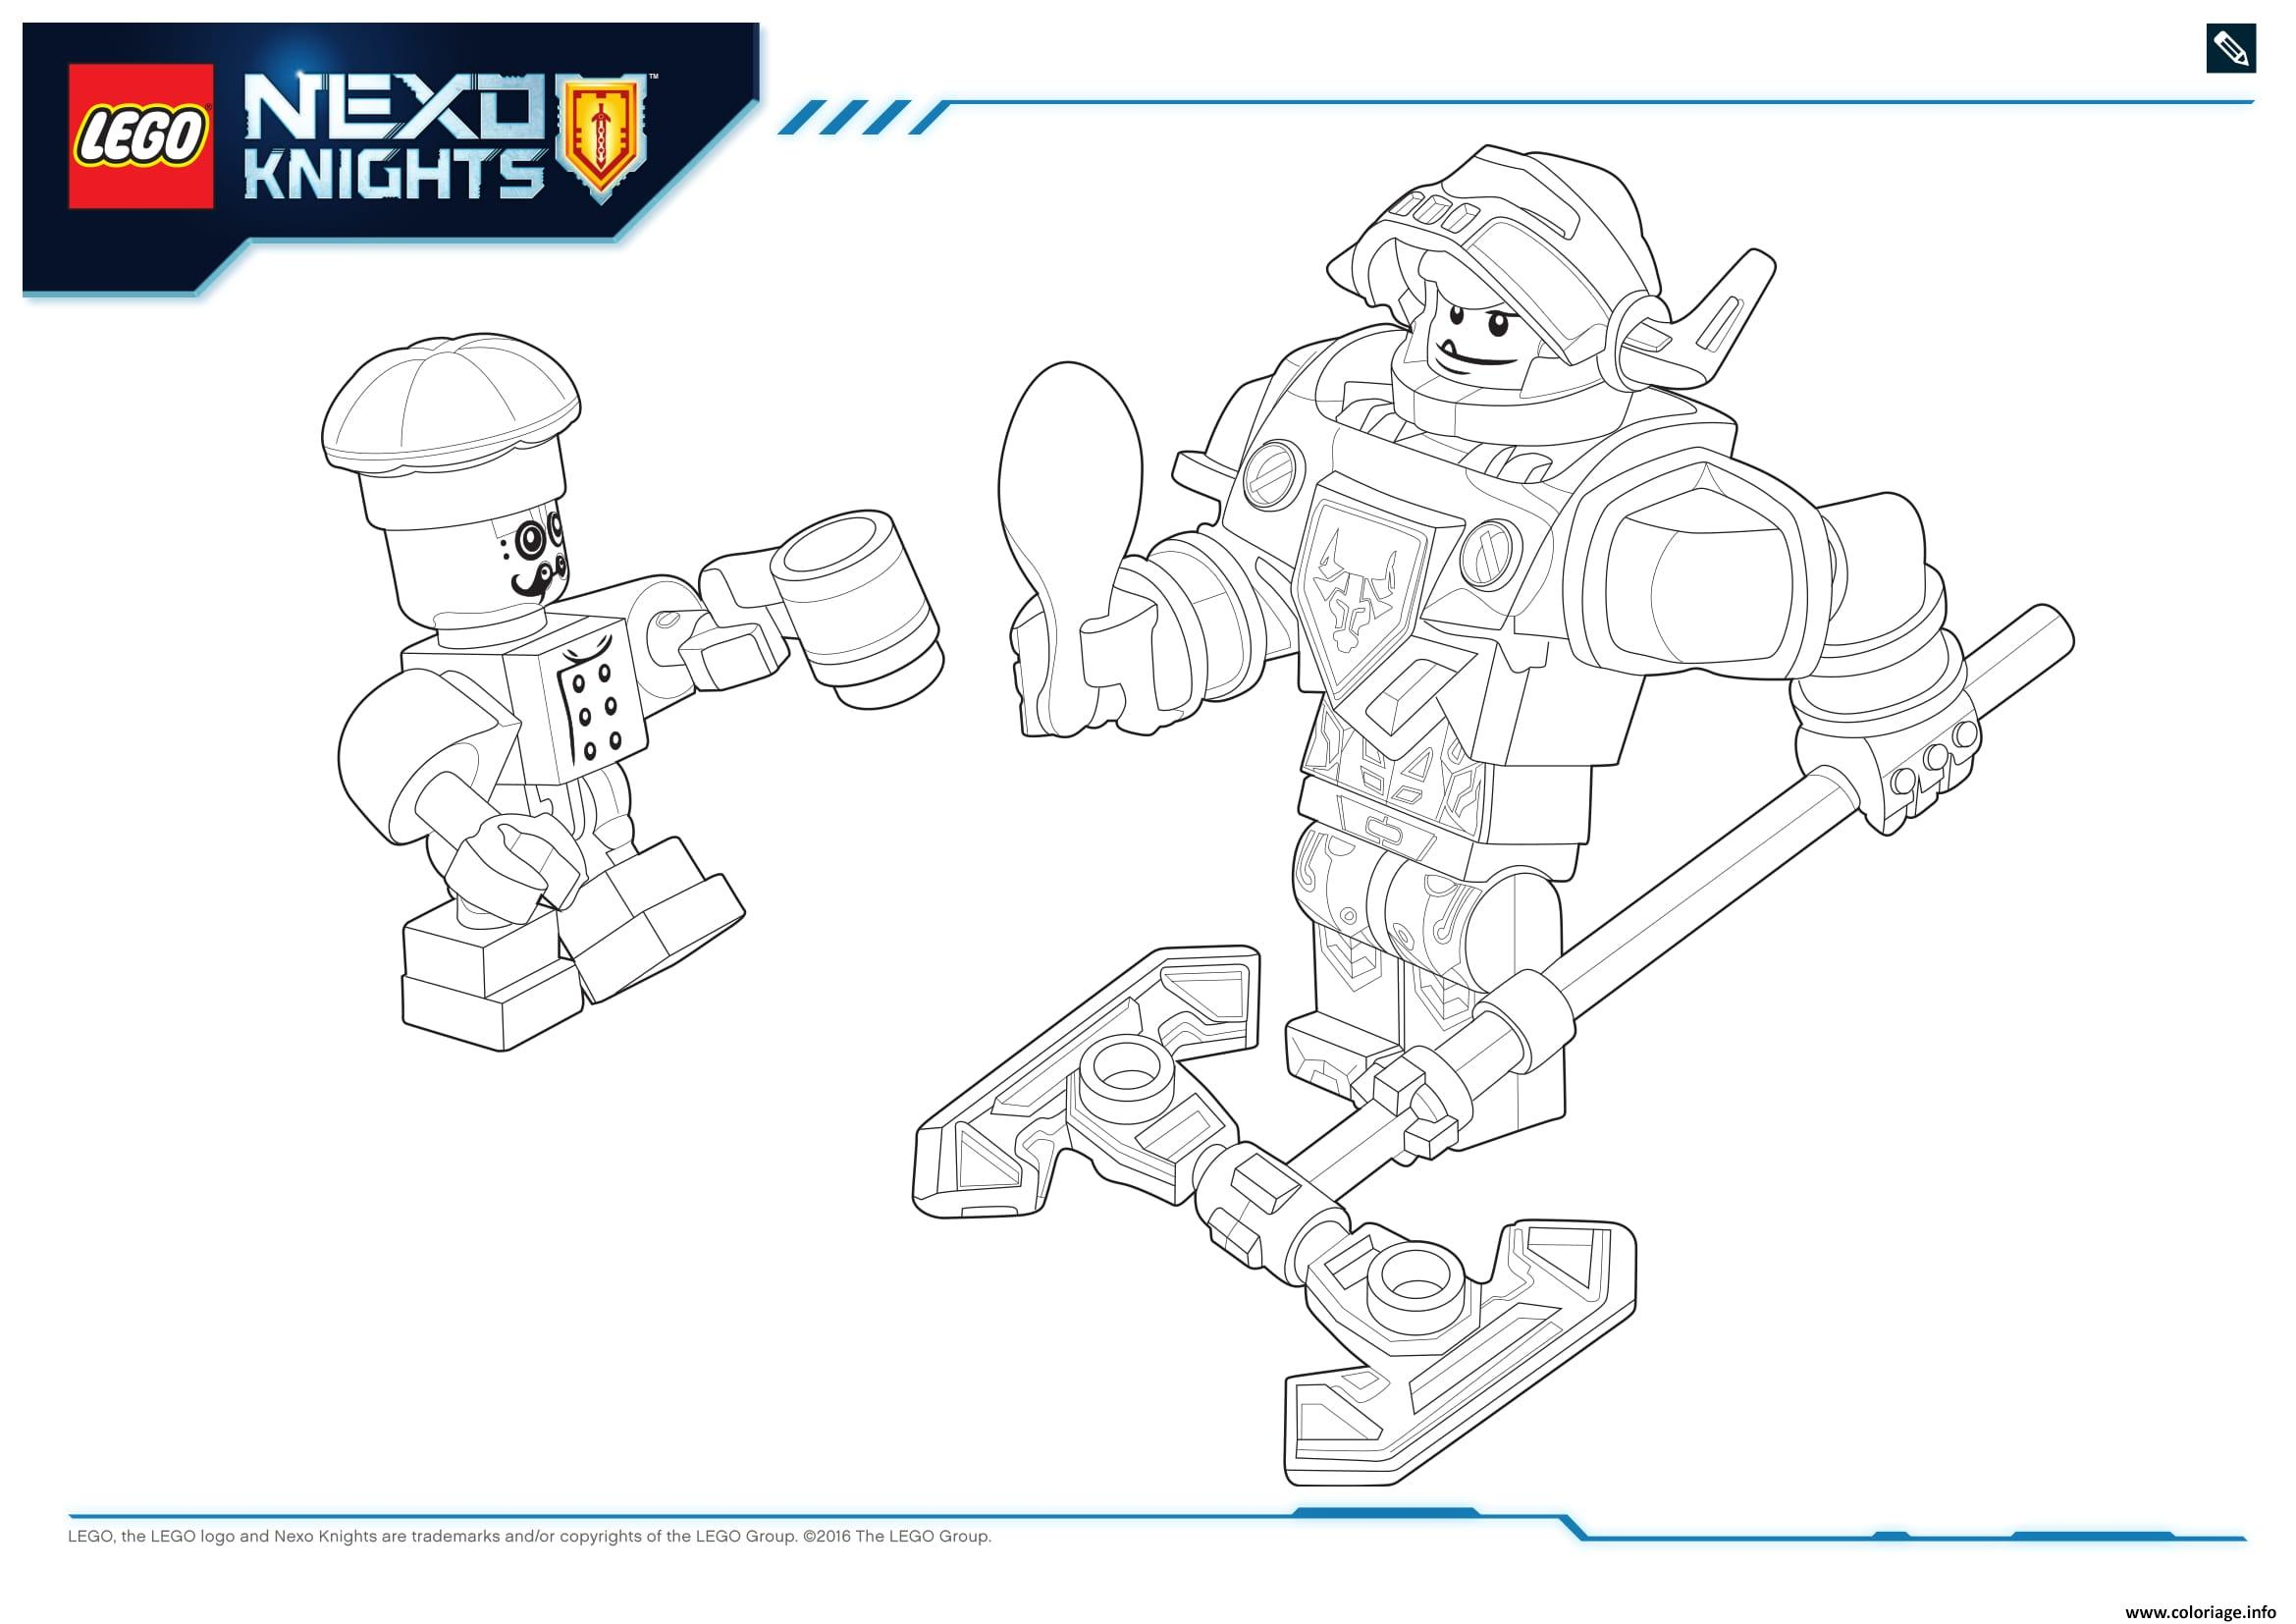 Coloriage Lego NEXO KNIGHTS Products 8 Dessin à Imprimer